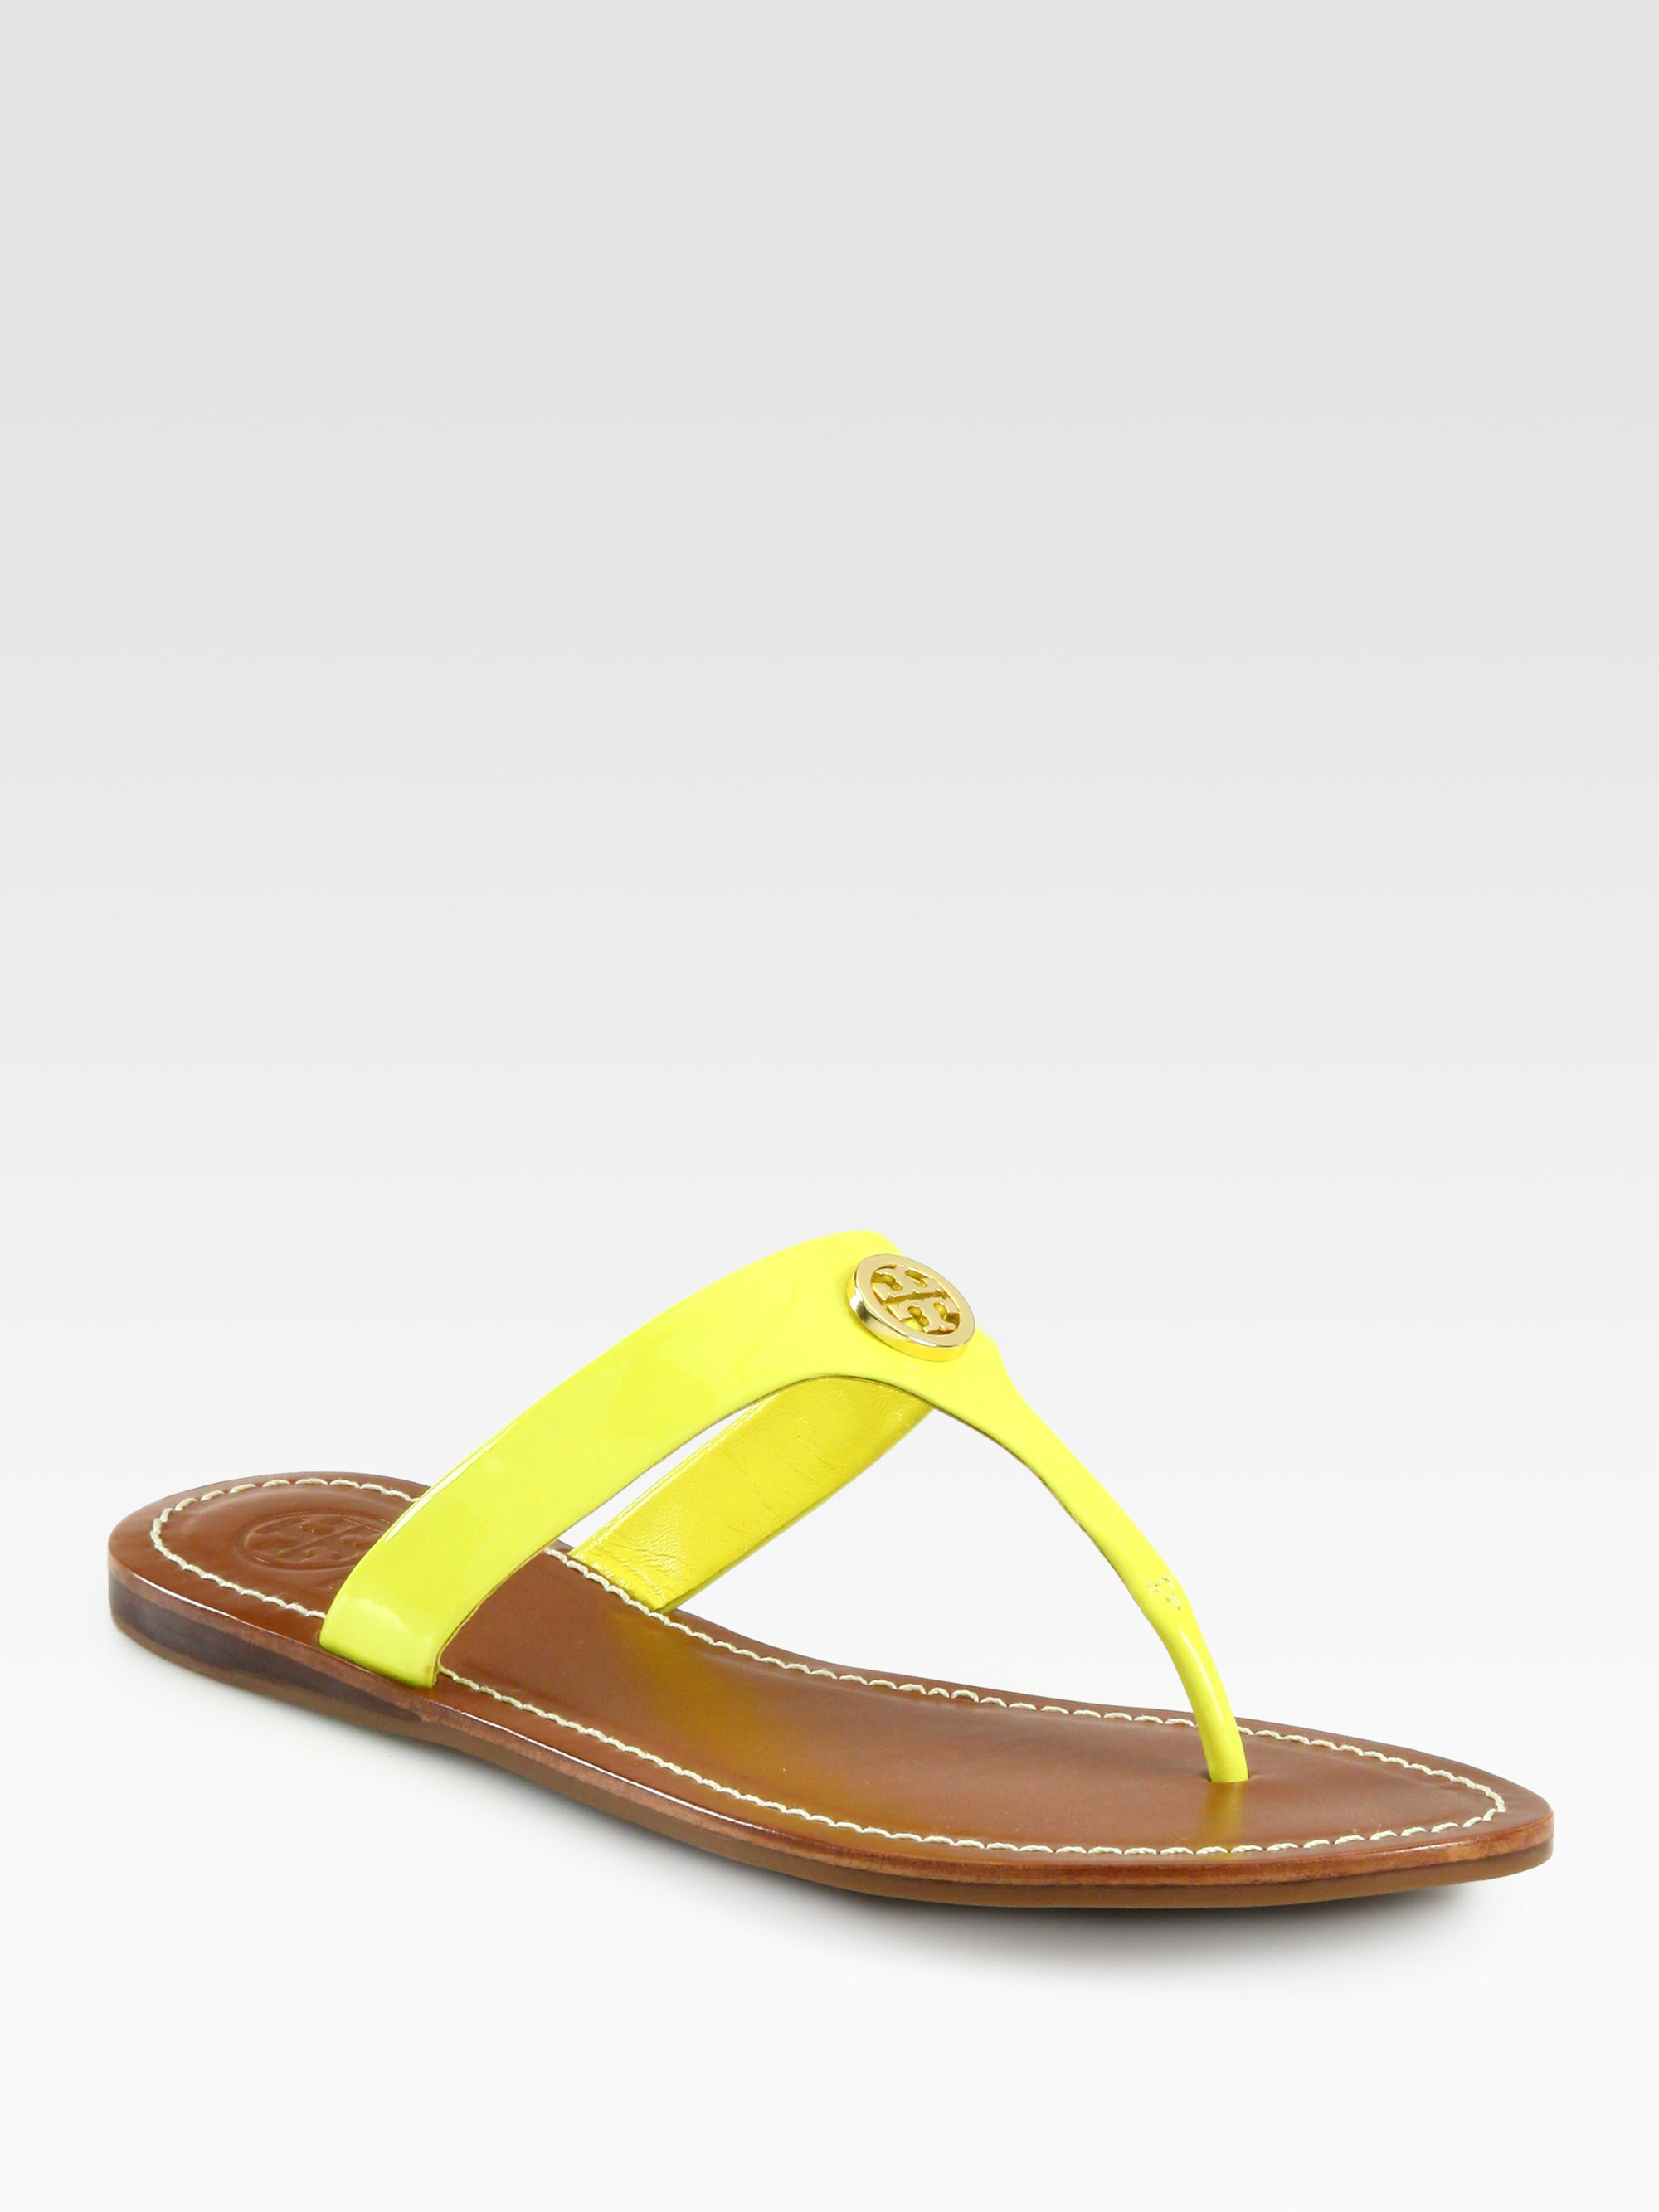 78dea8fb98f Lyst - Tory Burch Cameron Patent Leather Thong Sandals in Yellow